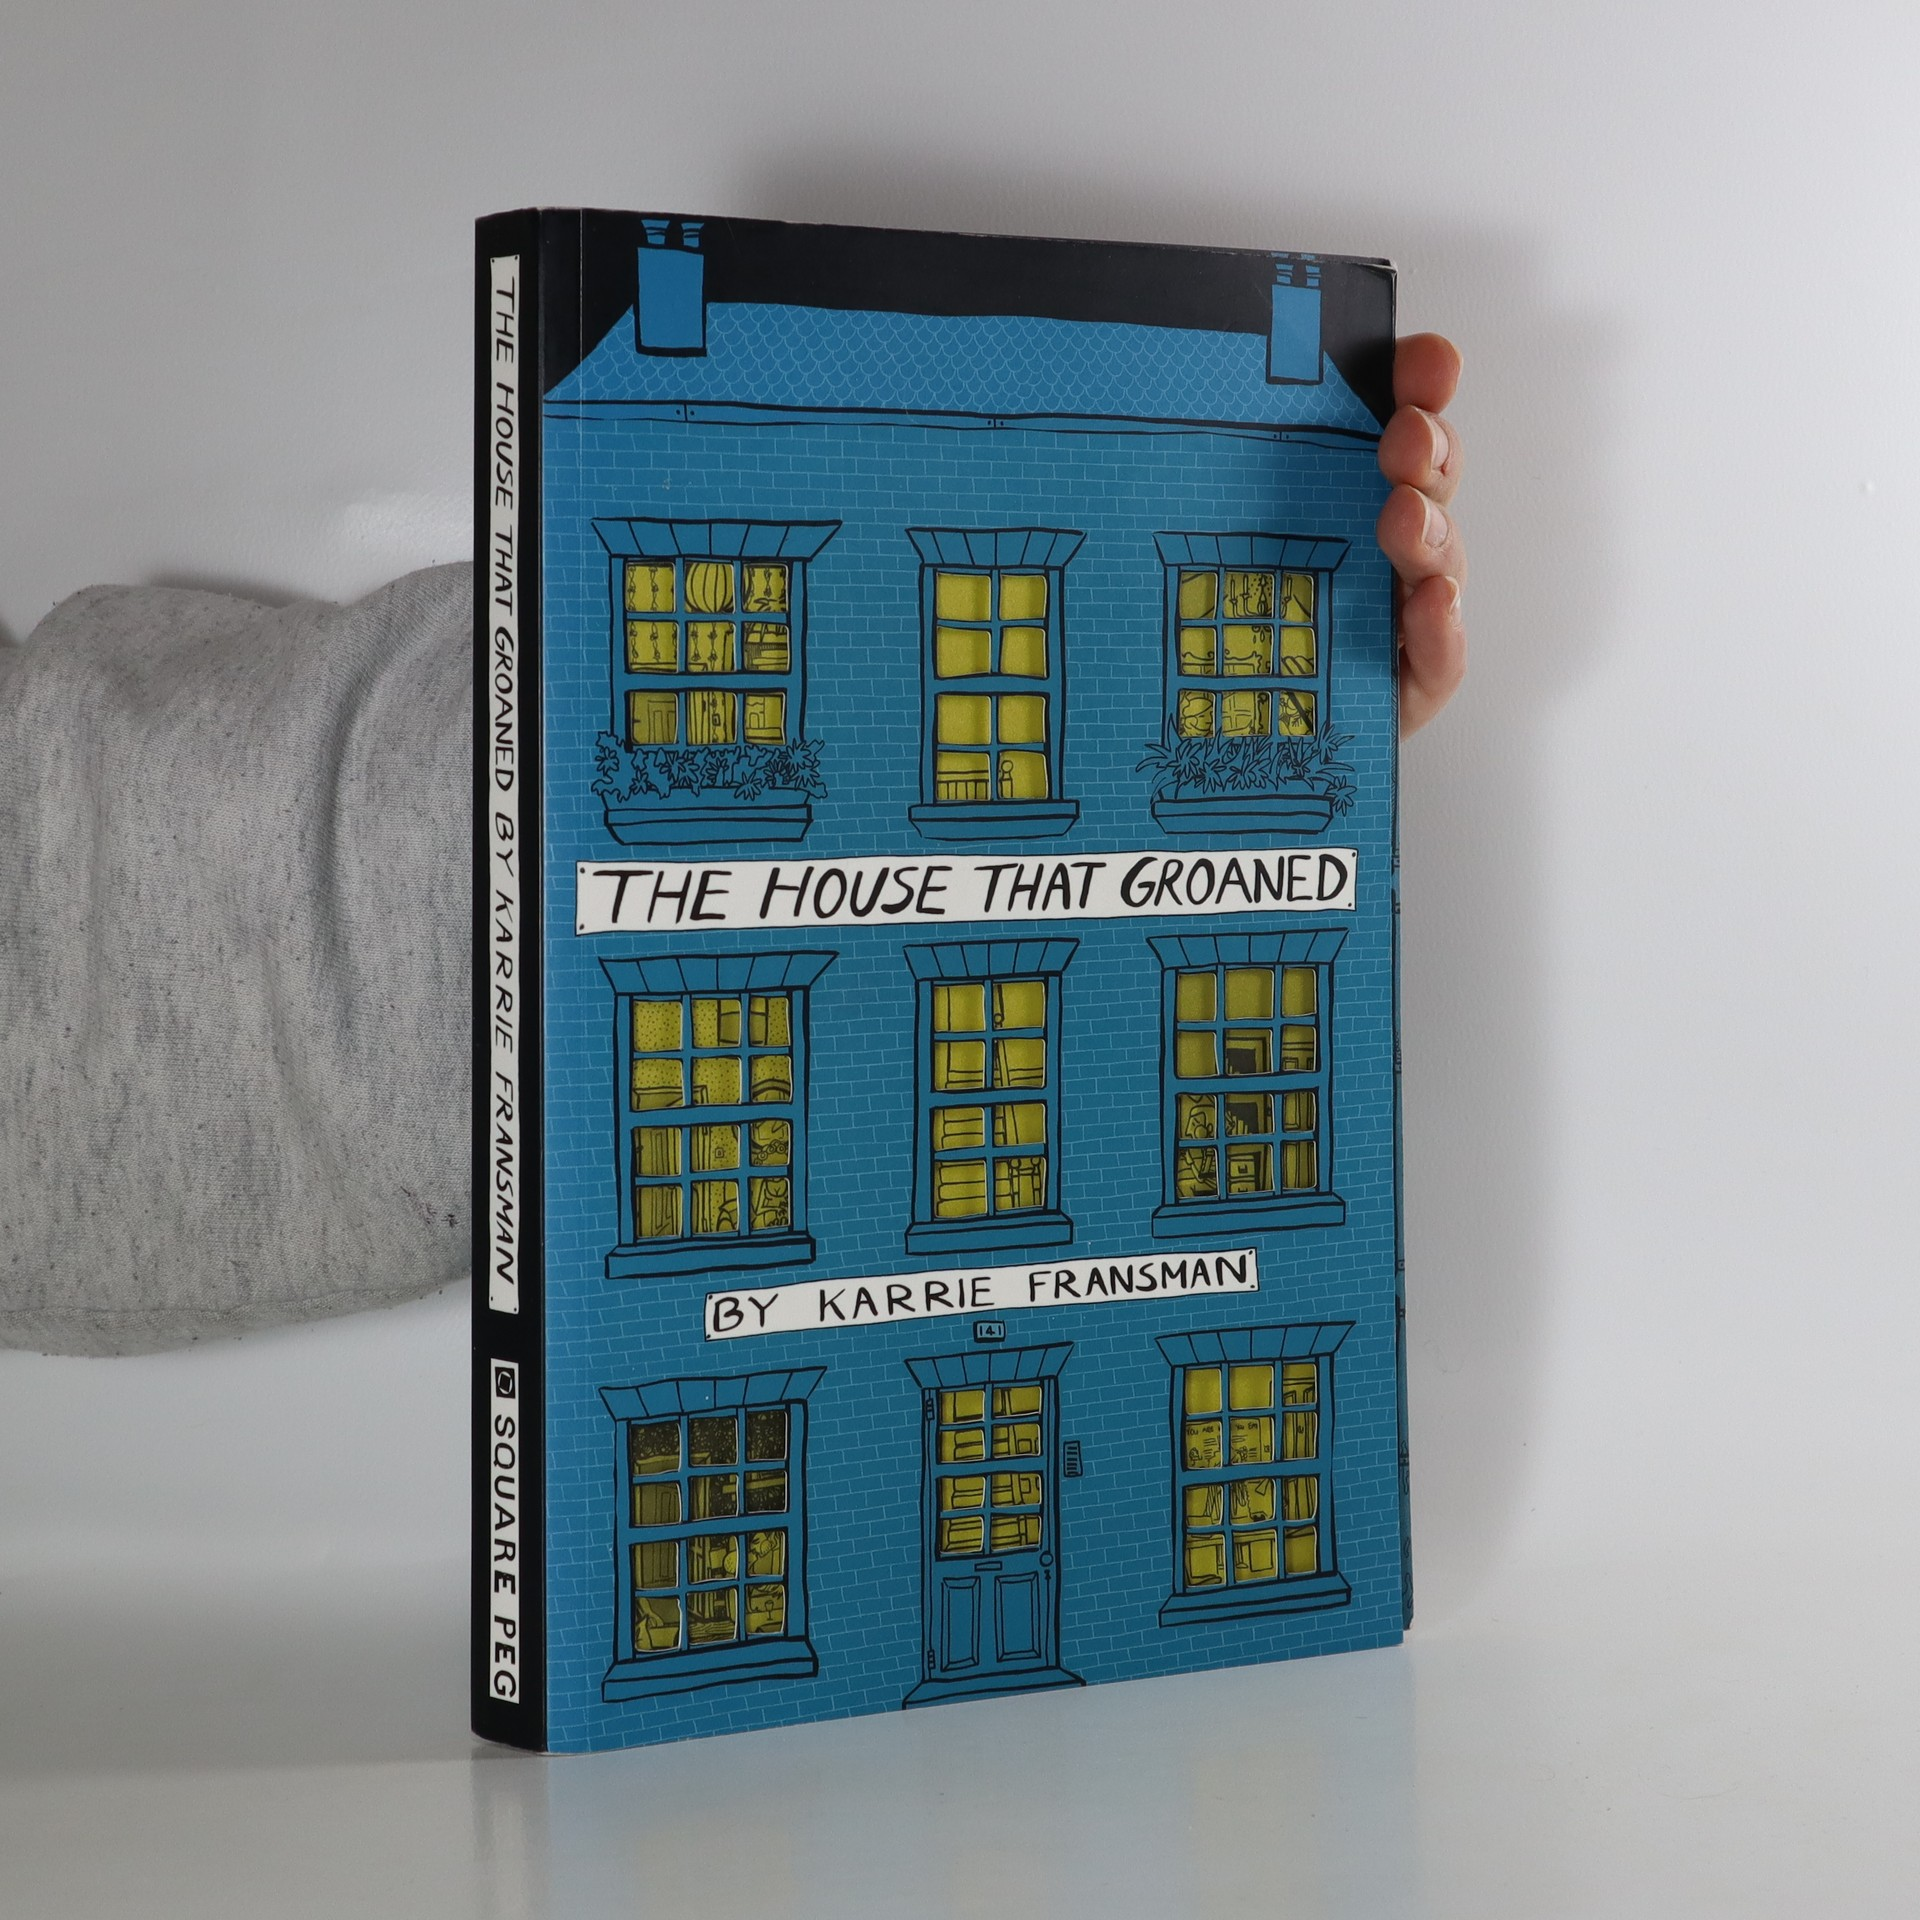 antikvární kniha The House that Groaned, 2012